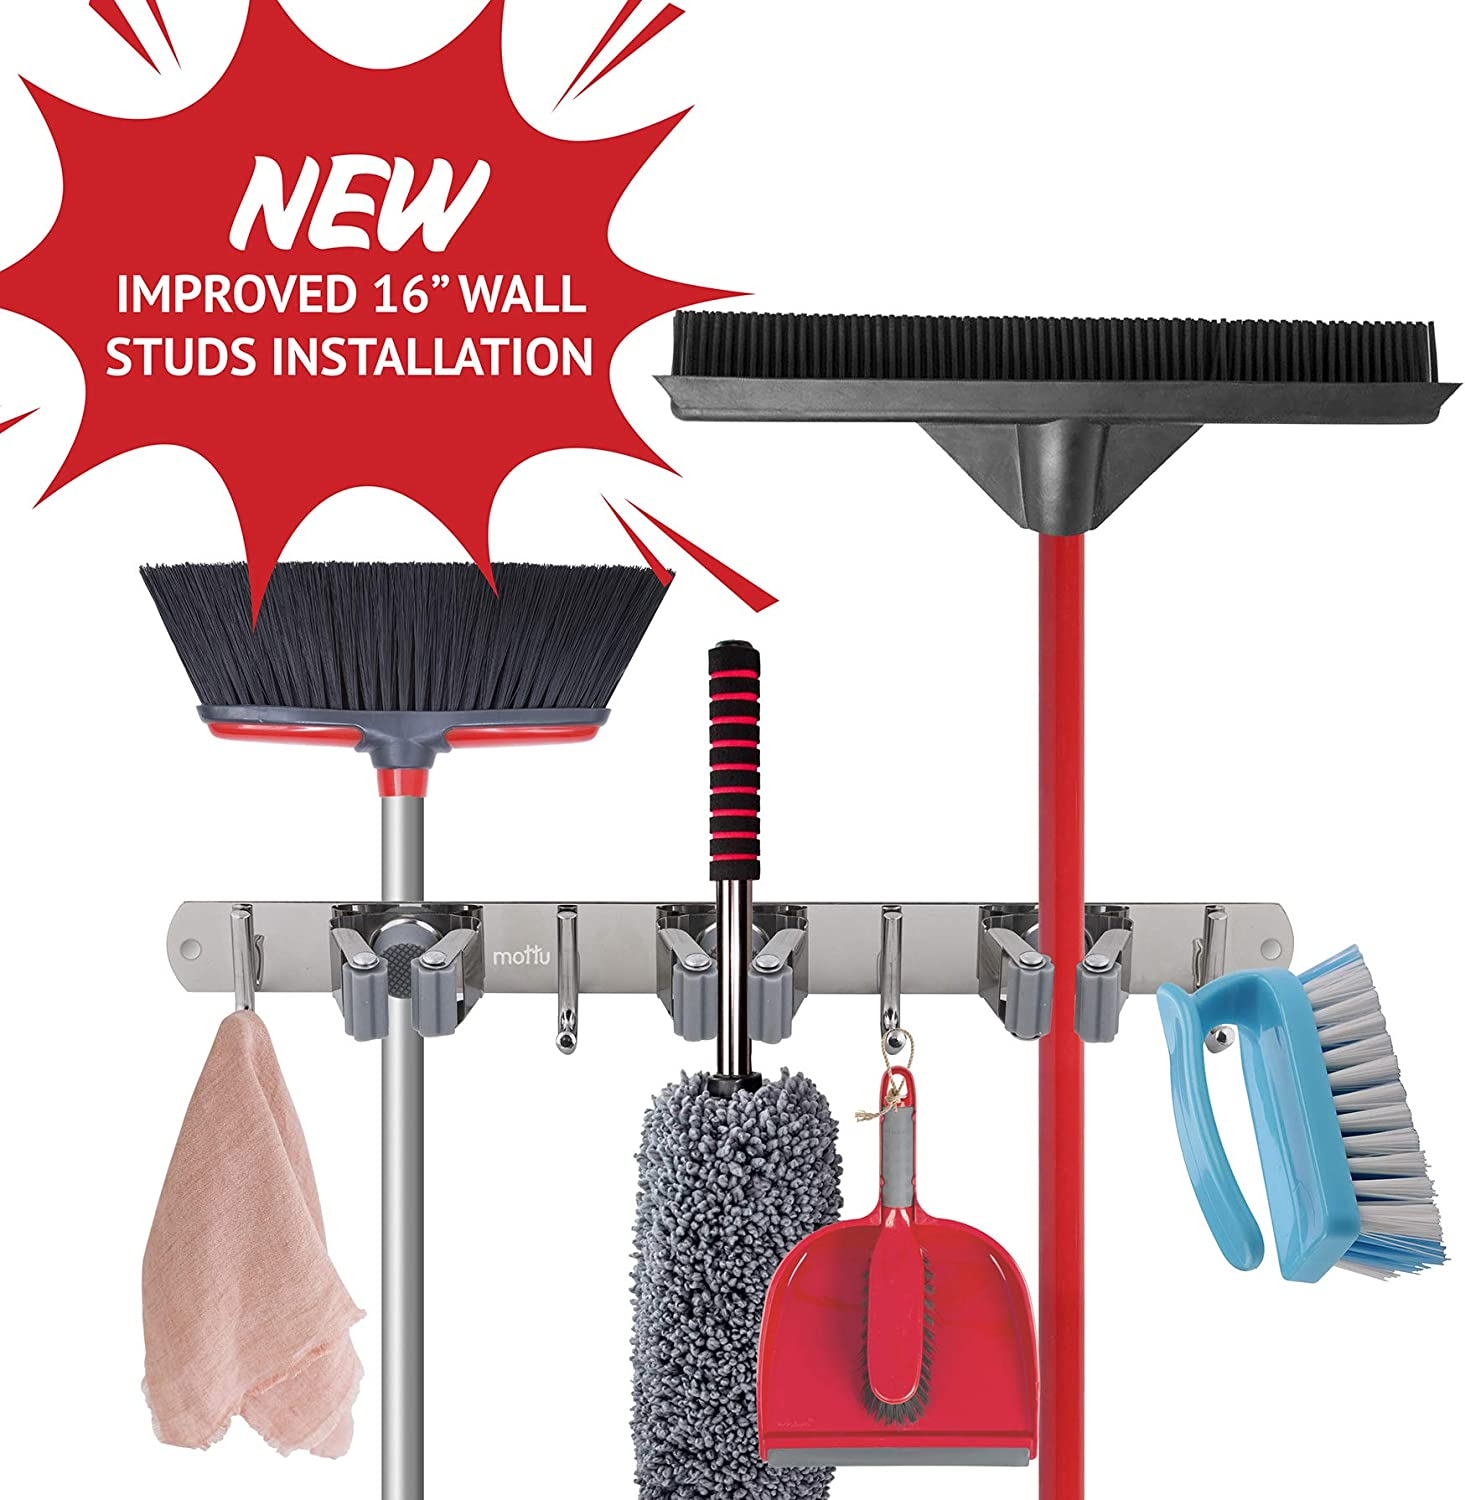 """Mop and Broom Organizer Wall Mount 16"""" Wall Stud Installation Broom Hanger Mop Holder for Home Organization Heavy Duty Stainless Steel Utility Hooks for Kitchen Closet Laundry and Bathroom Storage"""